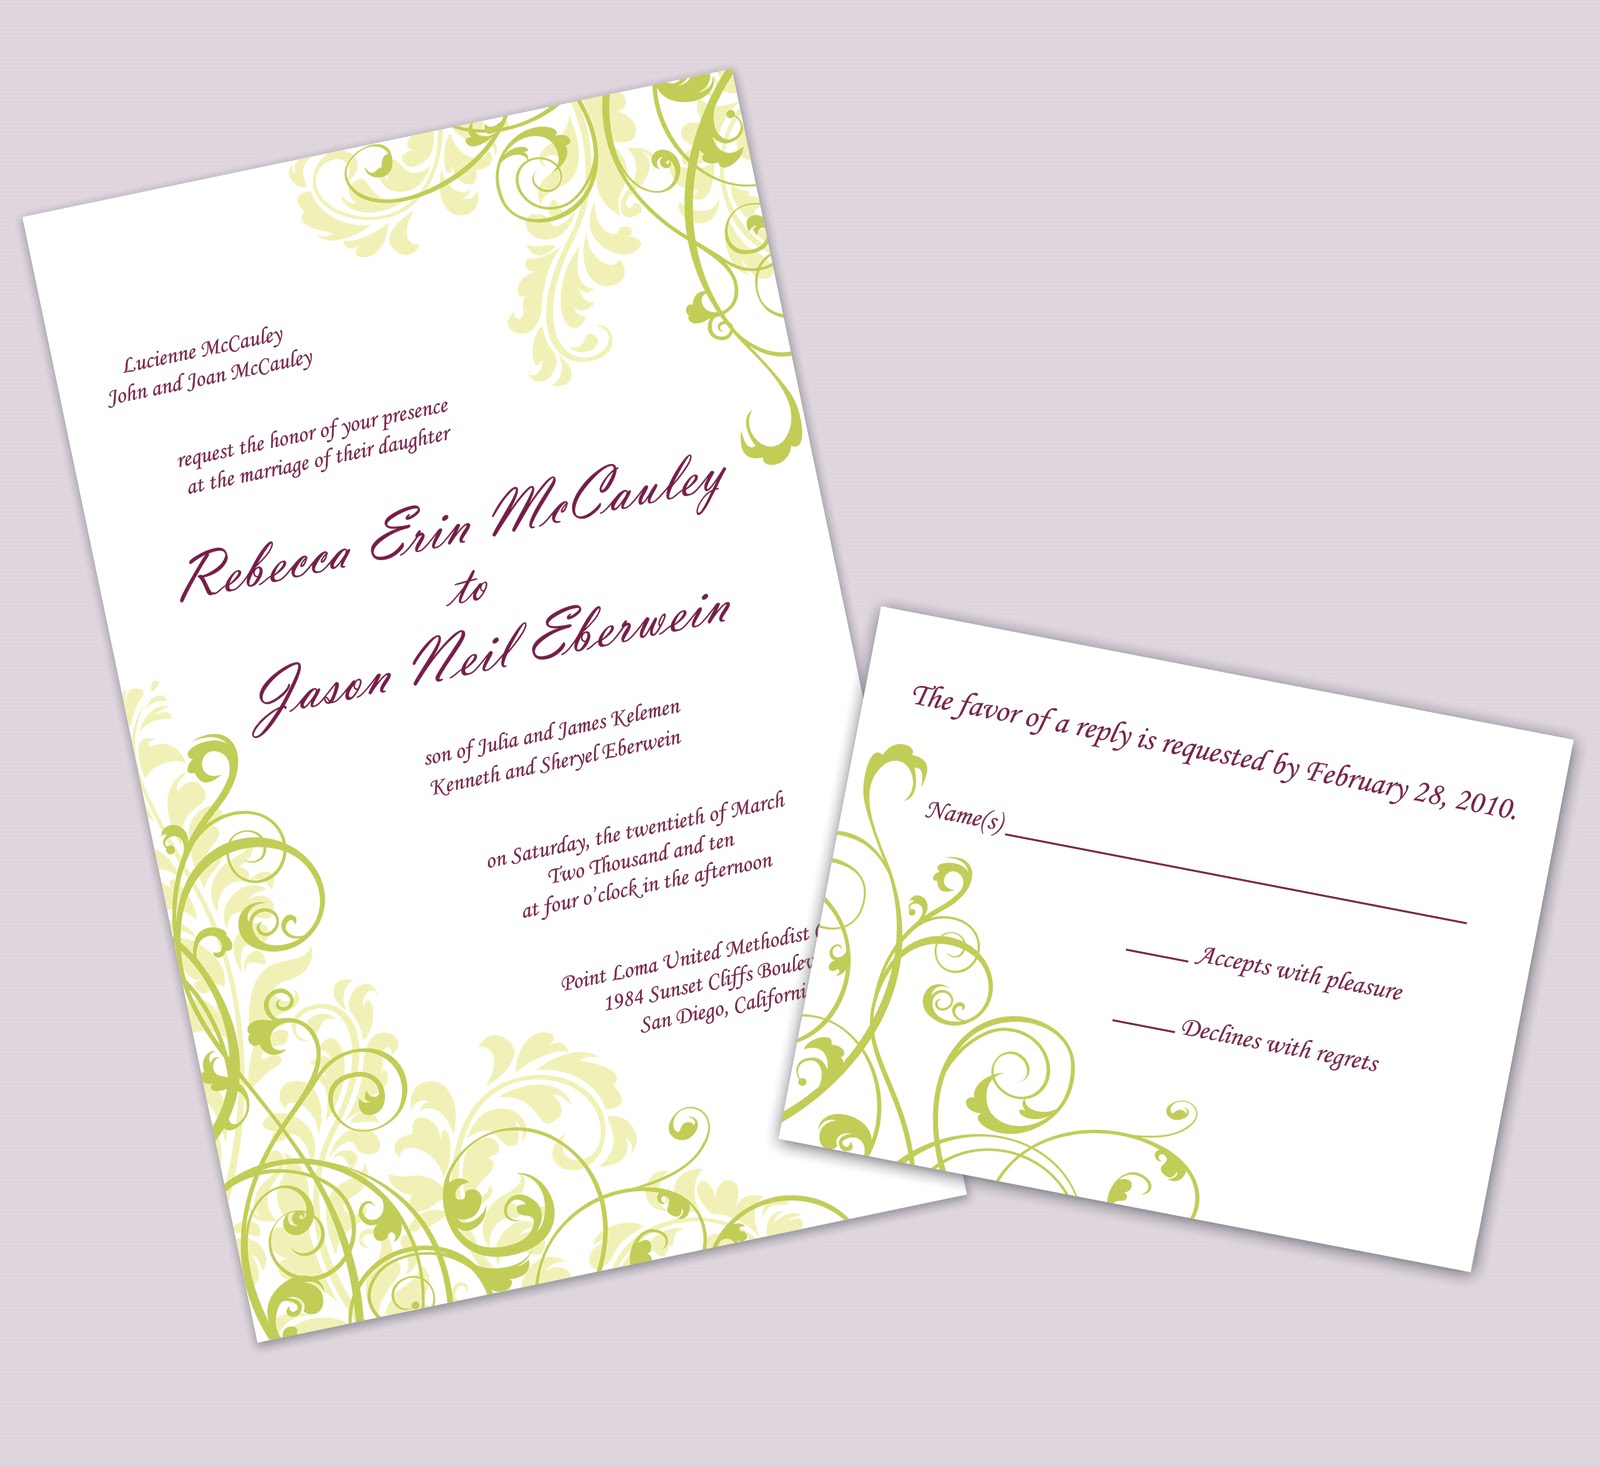 Christian wedding card wedding cards for Invitation cards for engagement